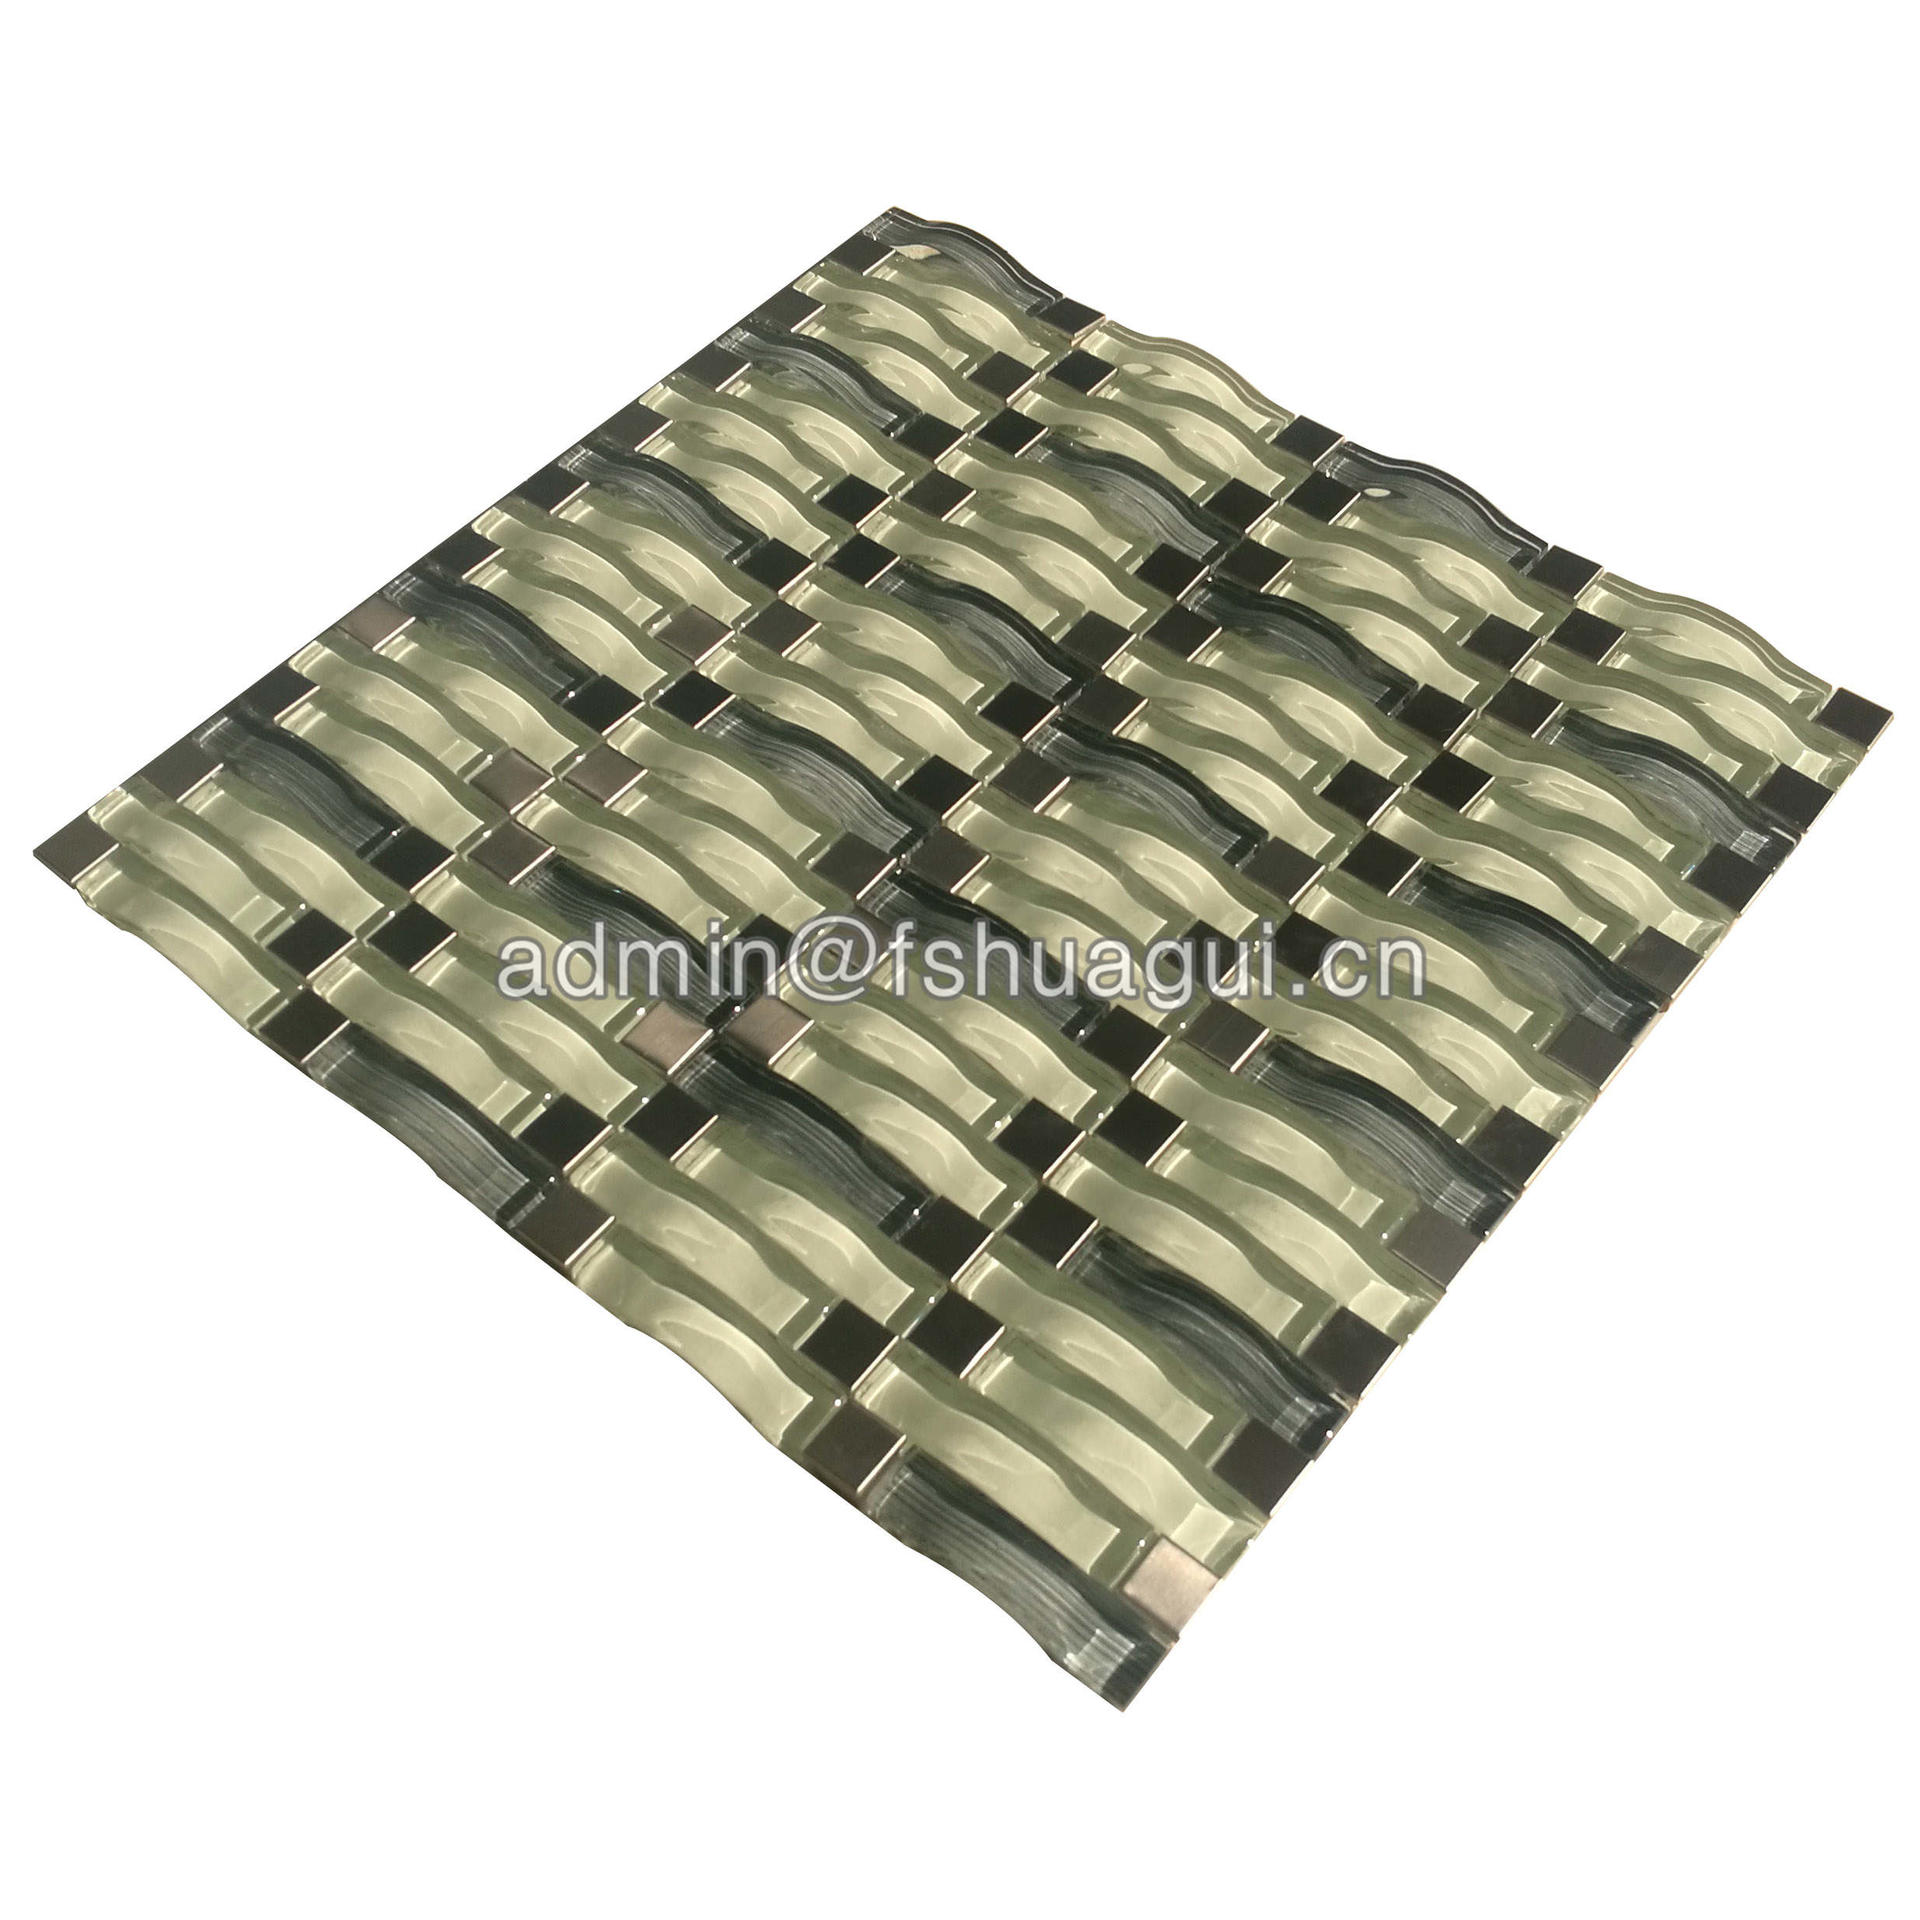 Silver stainless steel with cream mix green wave glass mosaic wall tile